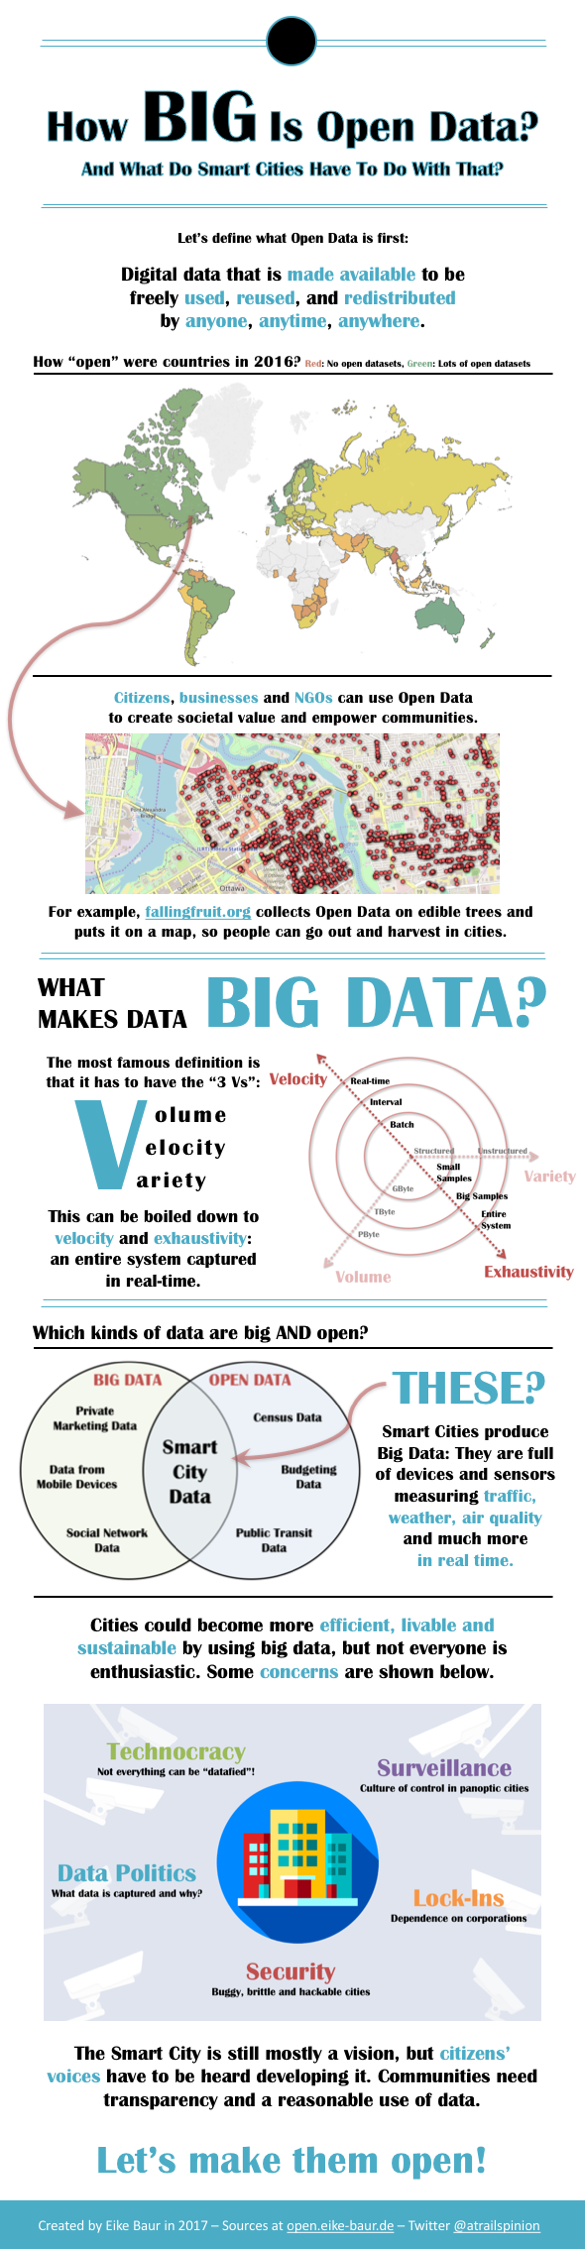 "Infographic on how ""big"" open data is"